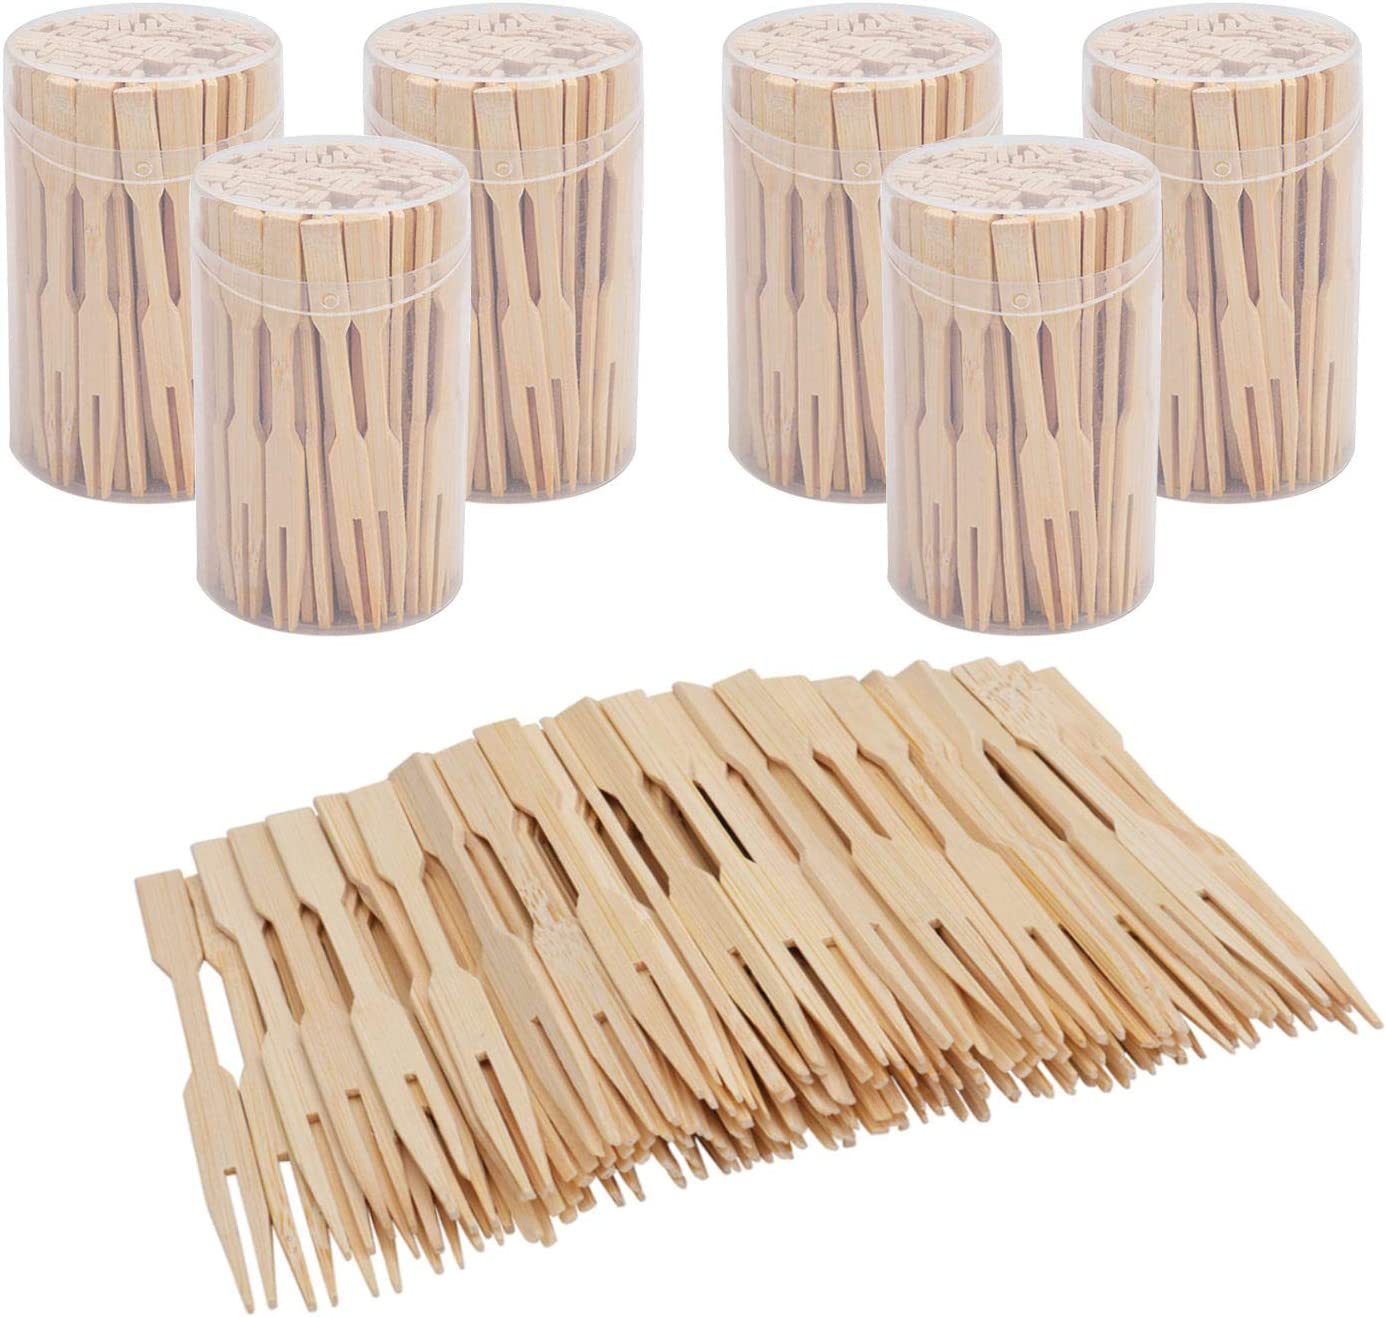 Lawei 6 Pack 600 Pieces Mini Bamboo Forks - 3.5 Inch Bamboo Fruit Picks Cocktail Picks Mini Food Picks for Appetizer, Cocktail, Fruit, Pastry, Dessert